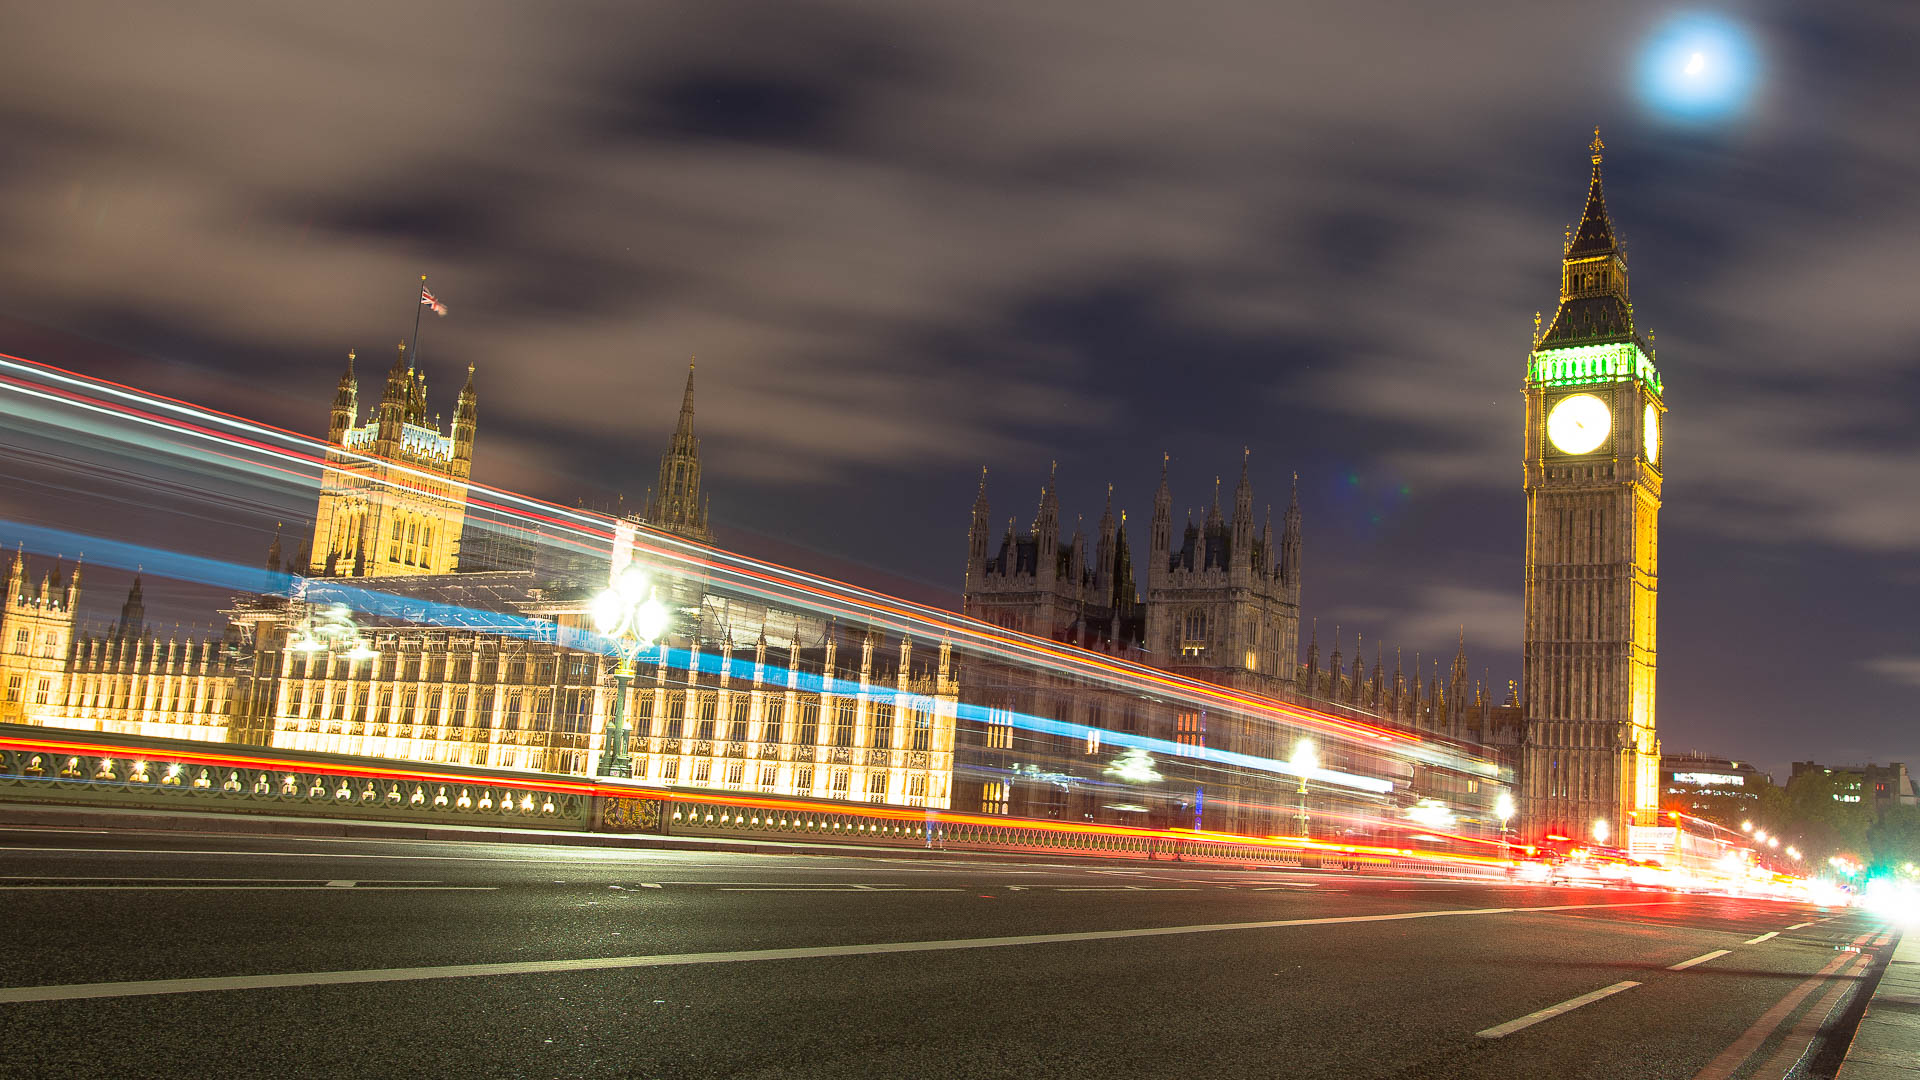 Big Ben / House of Parliament